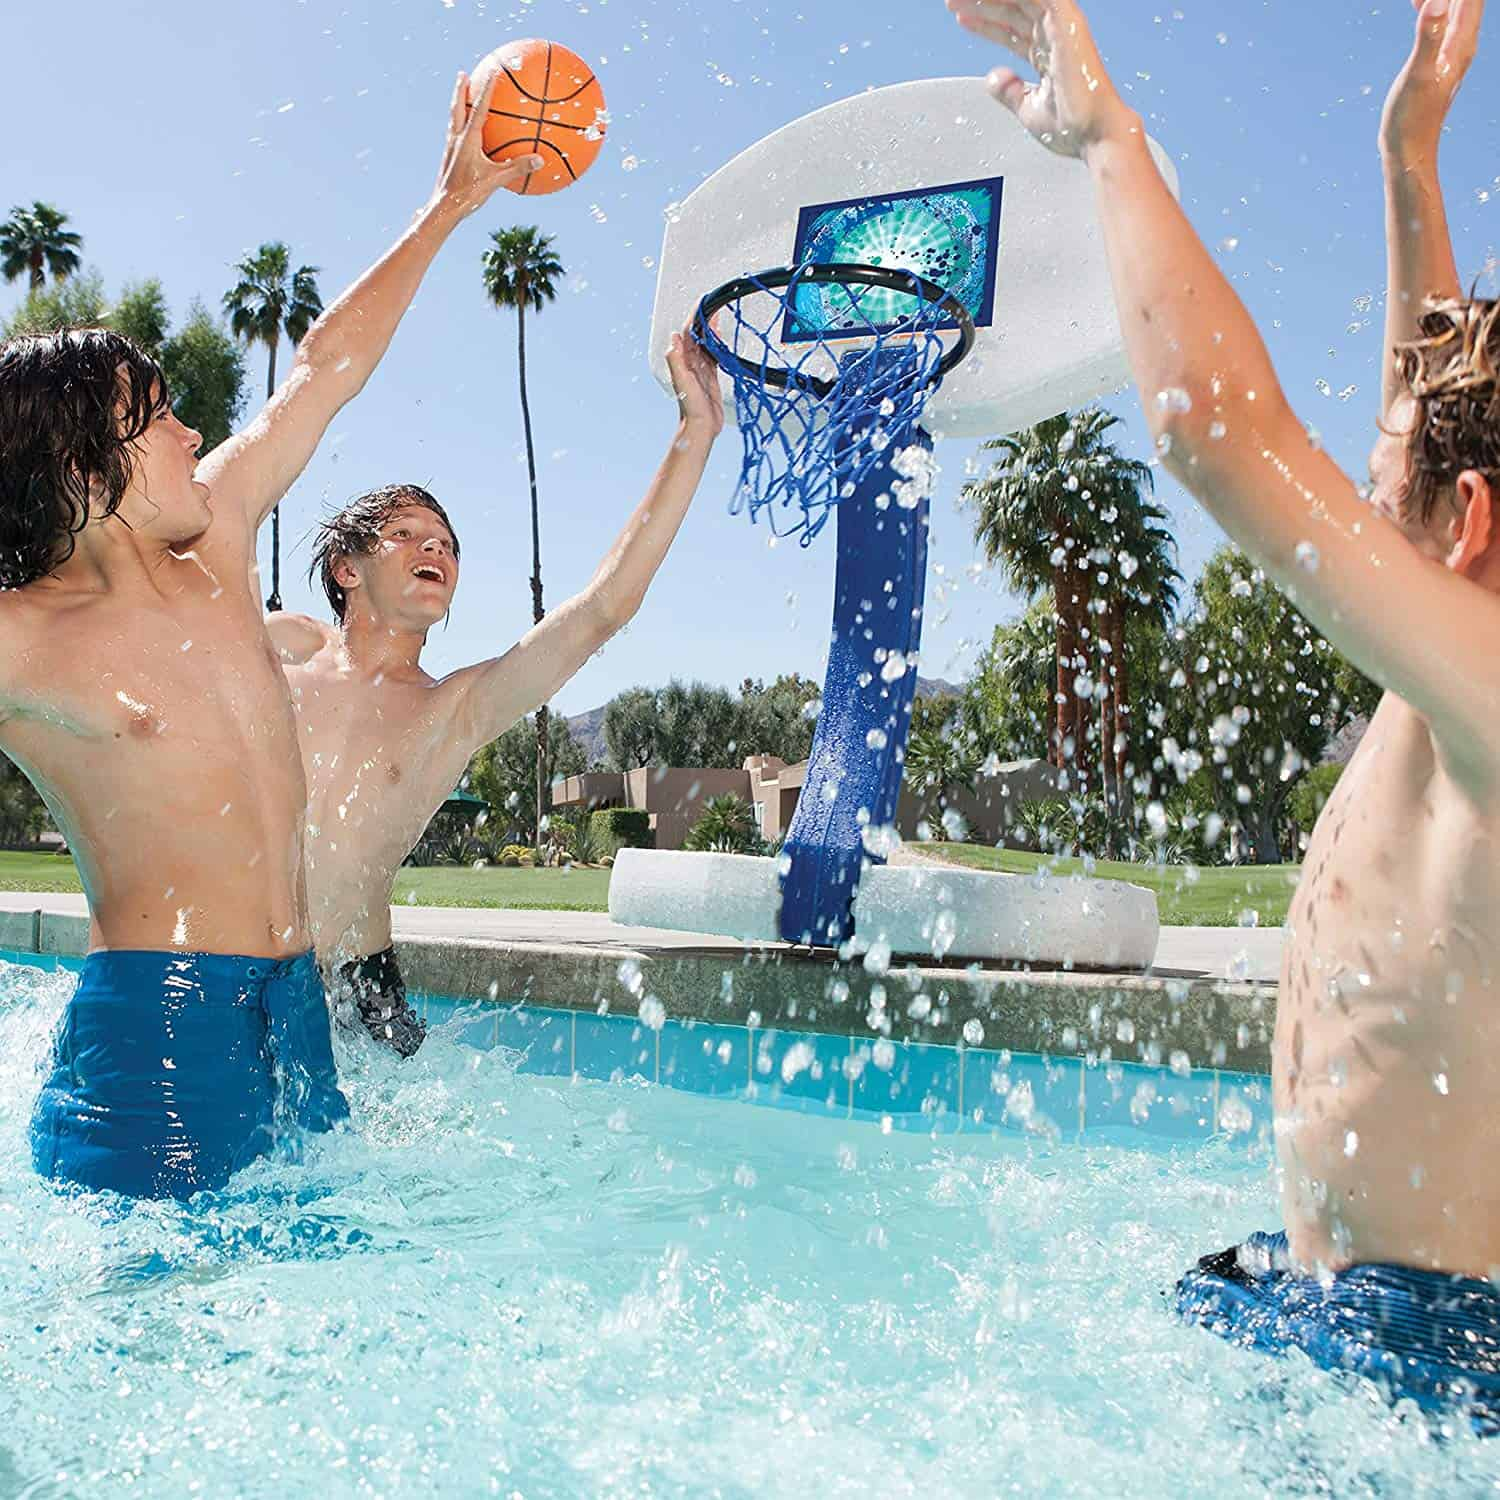 Best Pool Basketball Goals 2019 - The Rex Garden